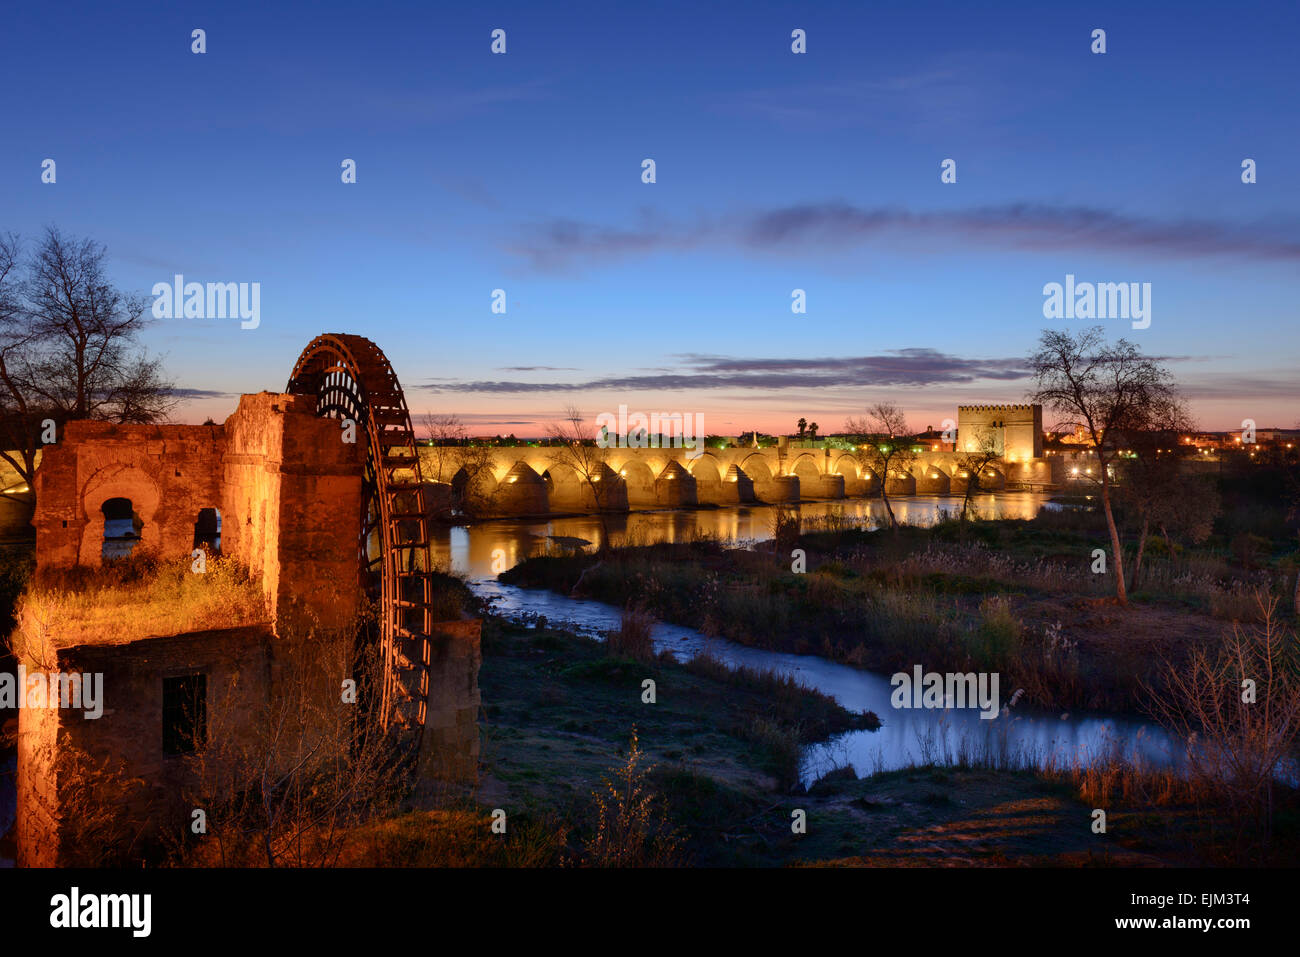 Pre dawn over the Guadalquivir river in Córdoba - Stock Image